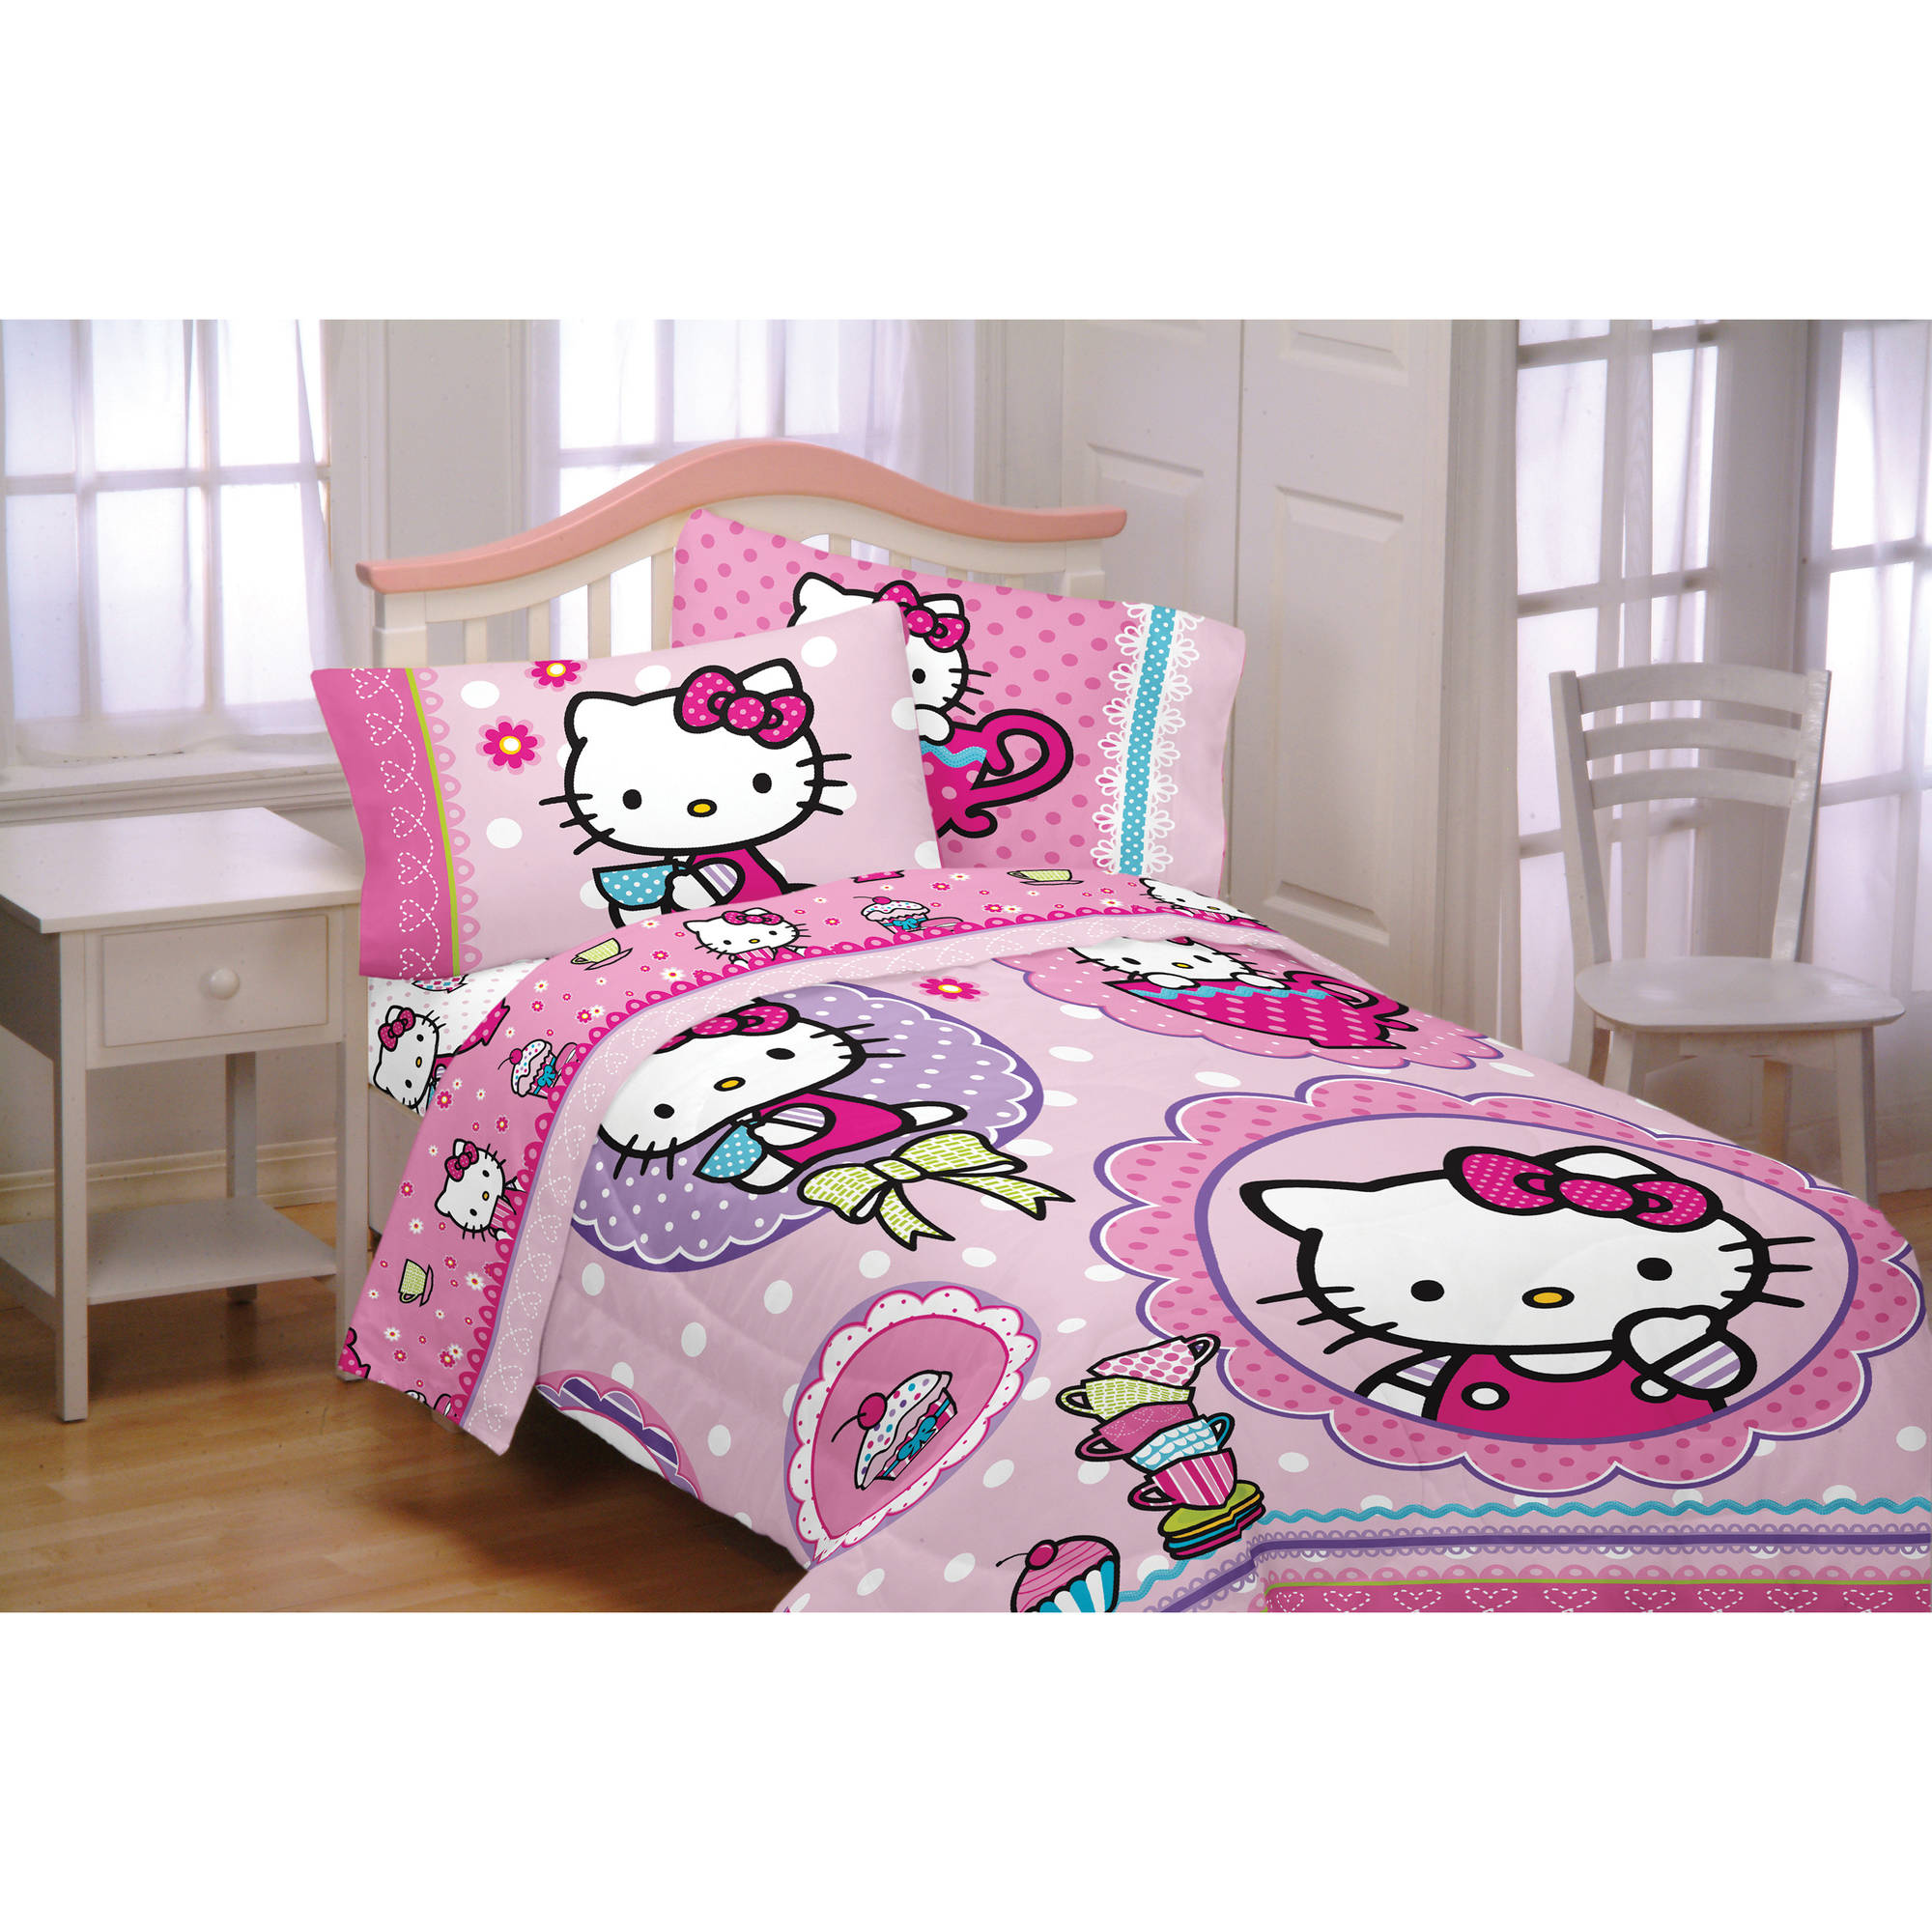 Pink hello kitty bedsheet - Pink Hello Kitty Bedsheet 8